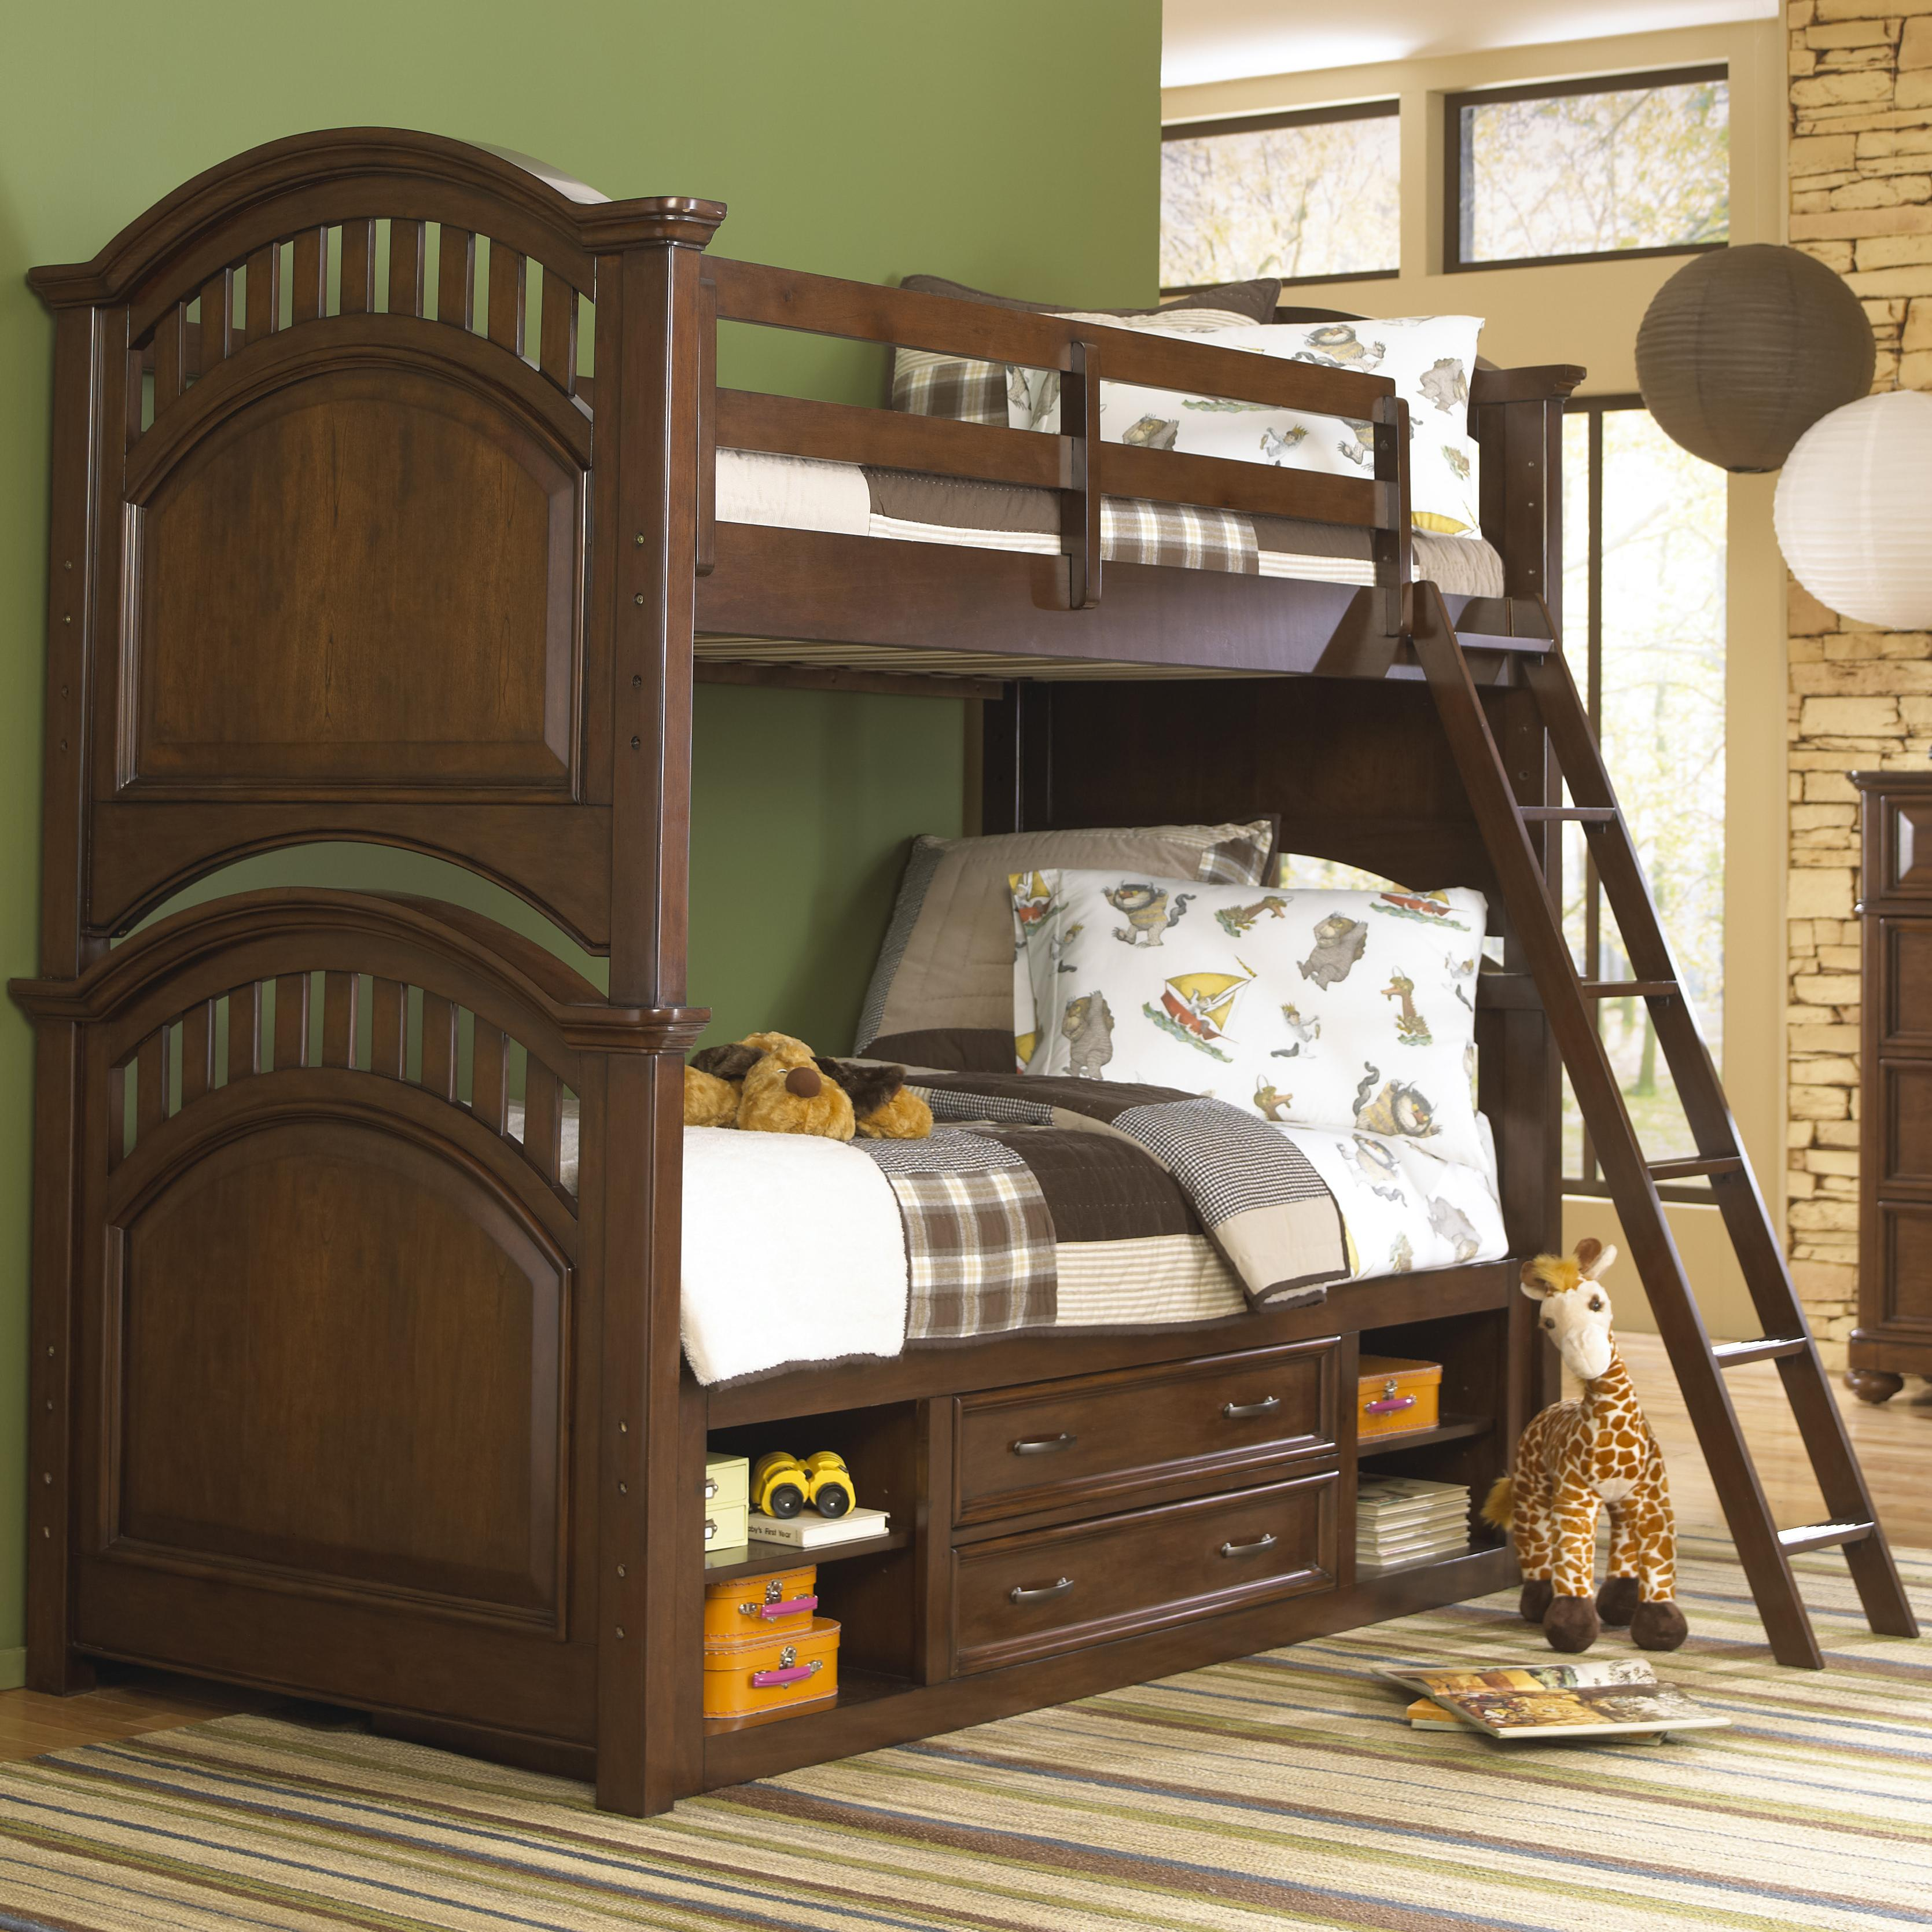 Twin Bunk Bed w/ Storage